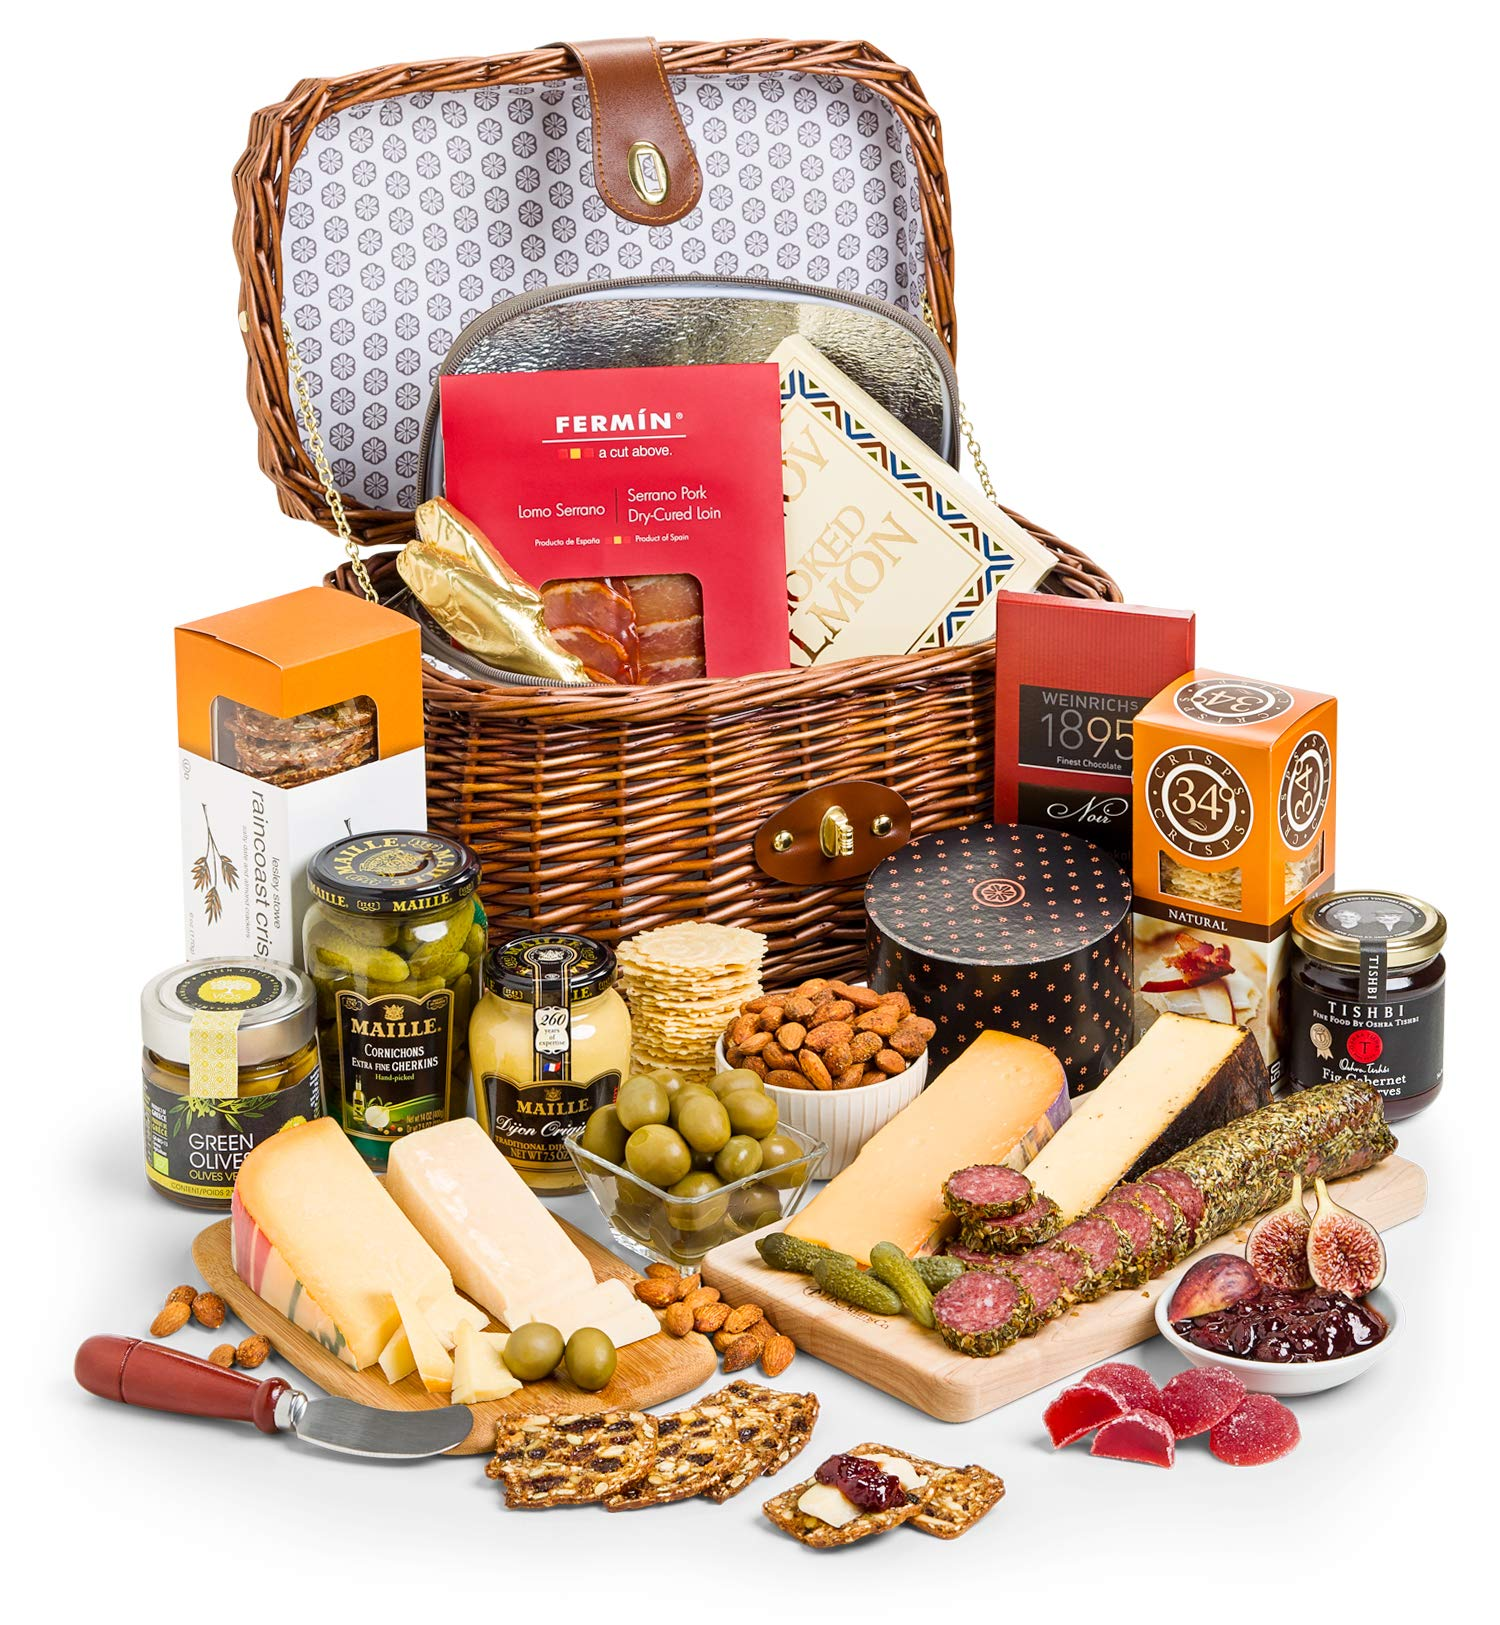 GiftTree Gourmet Charcuterie & Cheese Gift Hamper | Includes Four Award Winning Cheeses, Smoked Salmon, Spanish Charcuterie and more | Reusable Insulated Picnic Basket by GiftTree (Image #1)